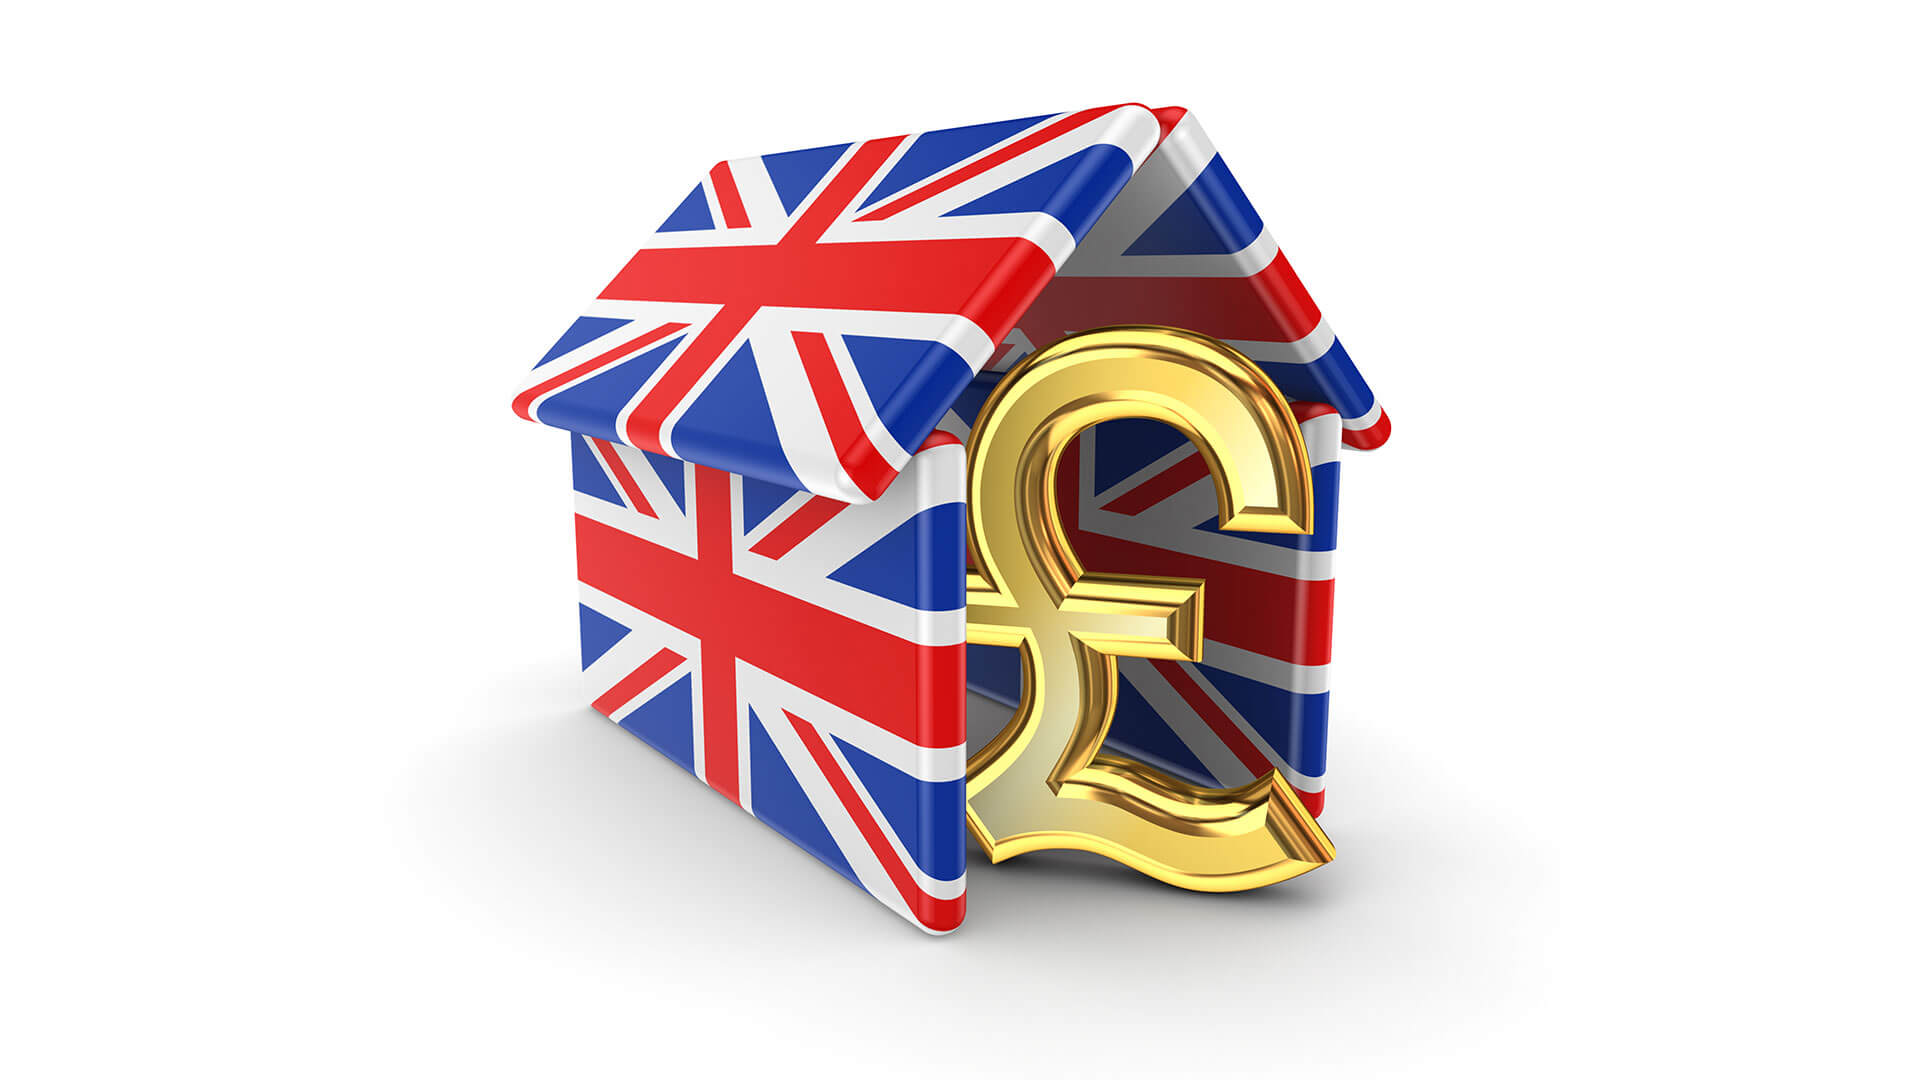 Pound sign under British flag roof